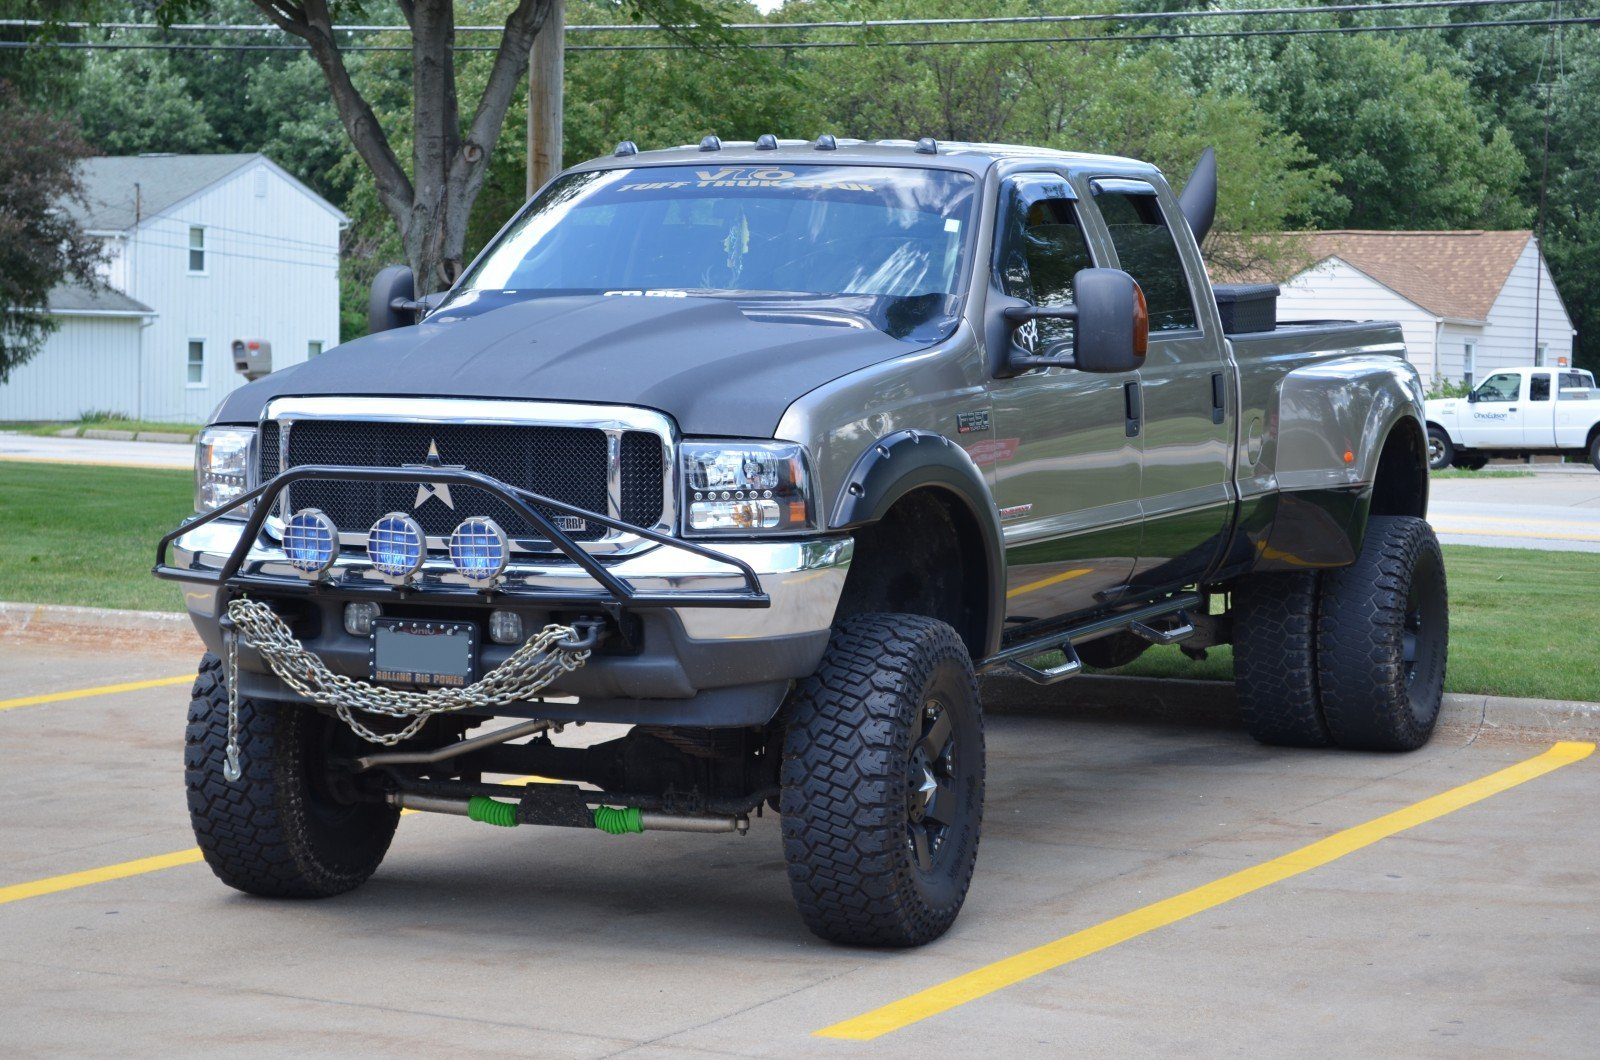 Ford F-350 Diesel 4x4 custom pickup truck f350 wallpaper ...